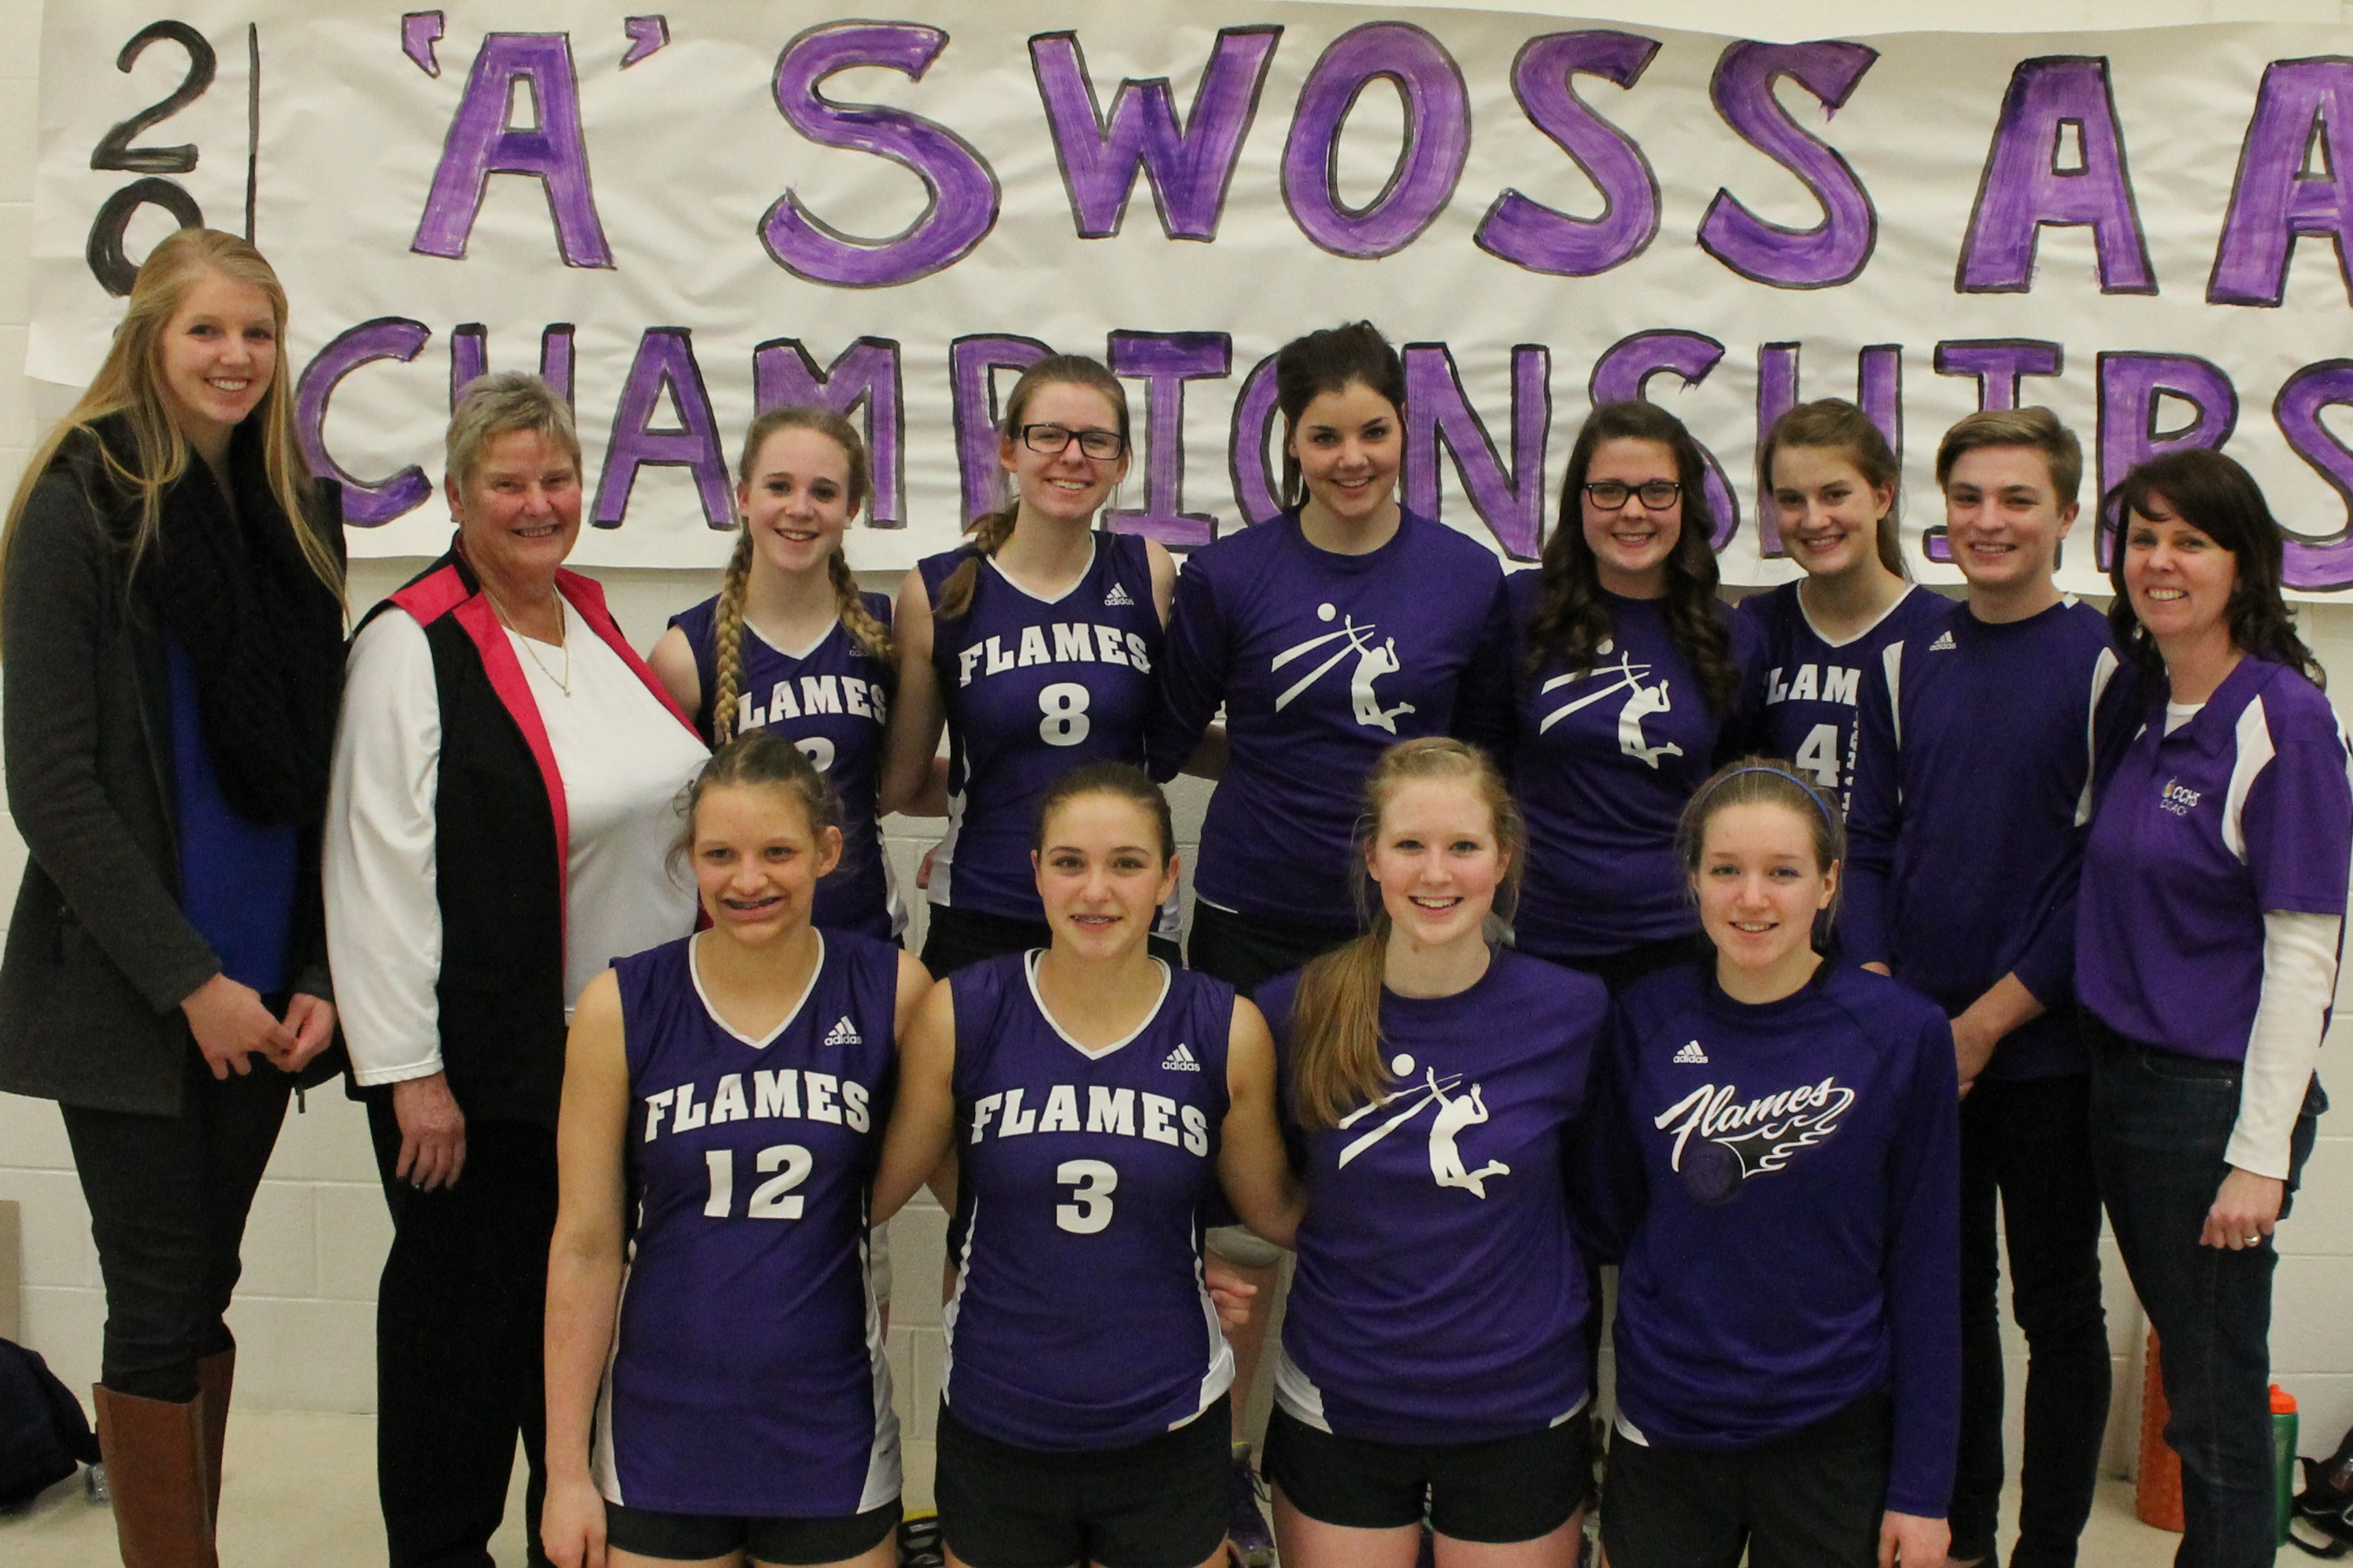 CCHS Sr. Girls Volleyball Team. Back row: Amy Bultje, Coach Ingrid Lahey, Ainsley McNamara, Abby Sluys, Michelle Vyn, Kate Taylor, Adele Steele, Bryce Koomans, Coach Patricia Sluys Front row: Amy Koomans, Allison Bos, Laura Dieleman, Erica Bultje. (Photo submitted by Sharon Smith)